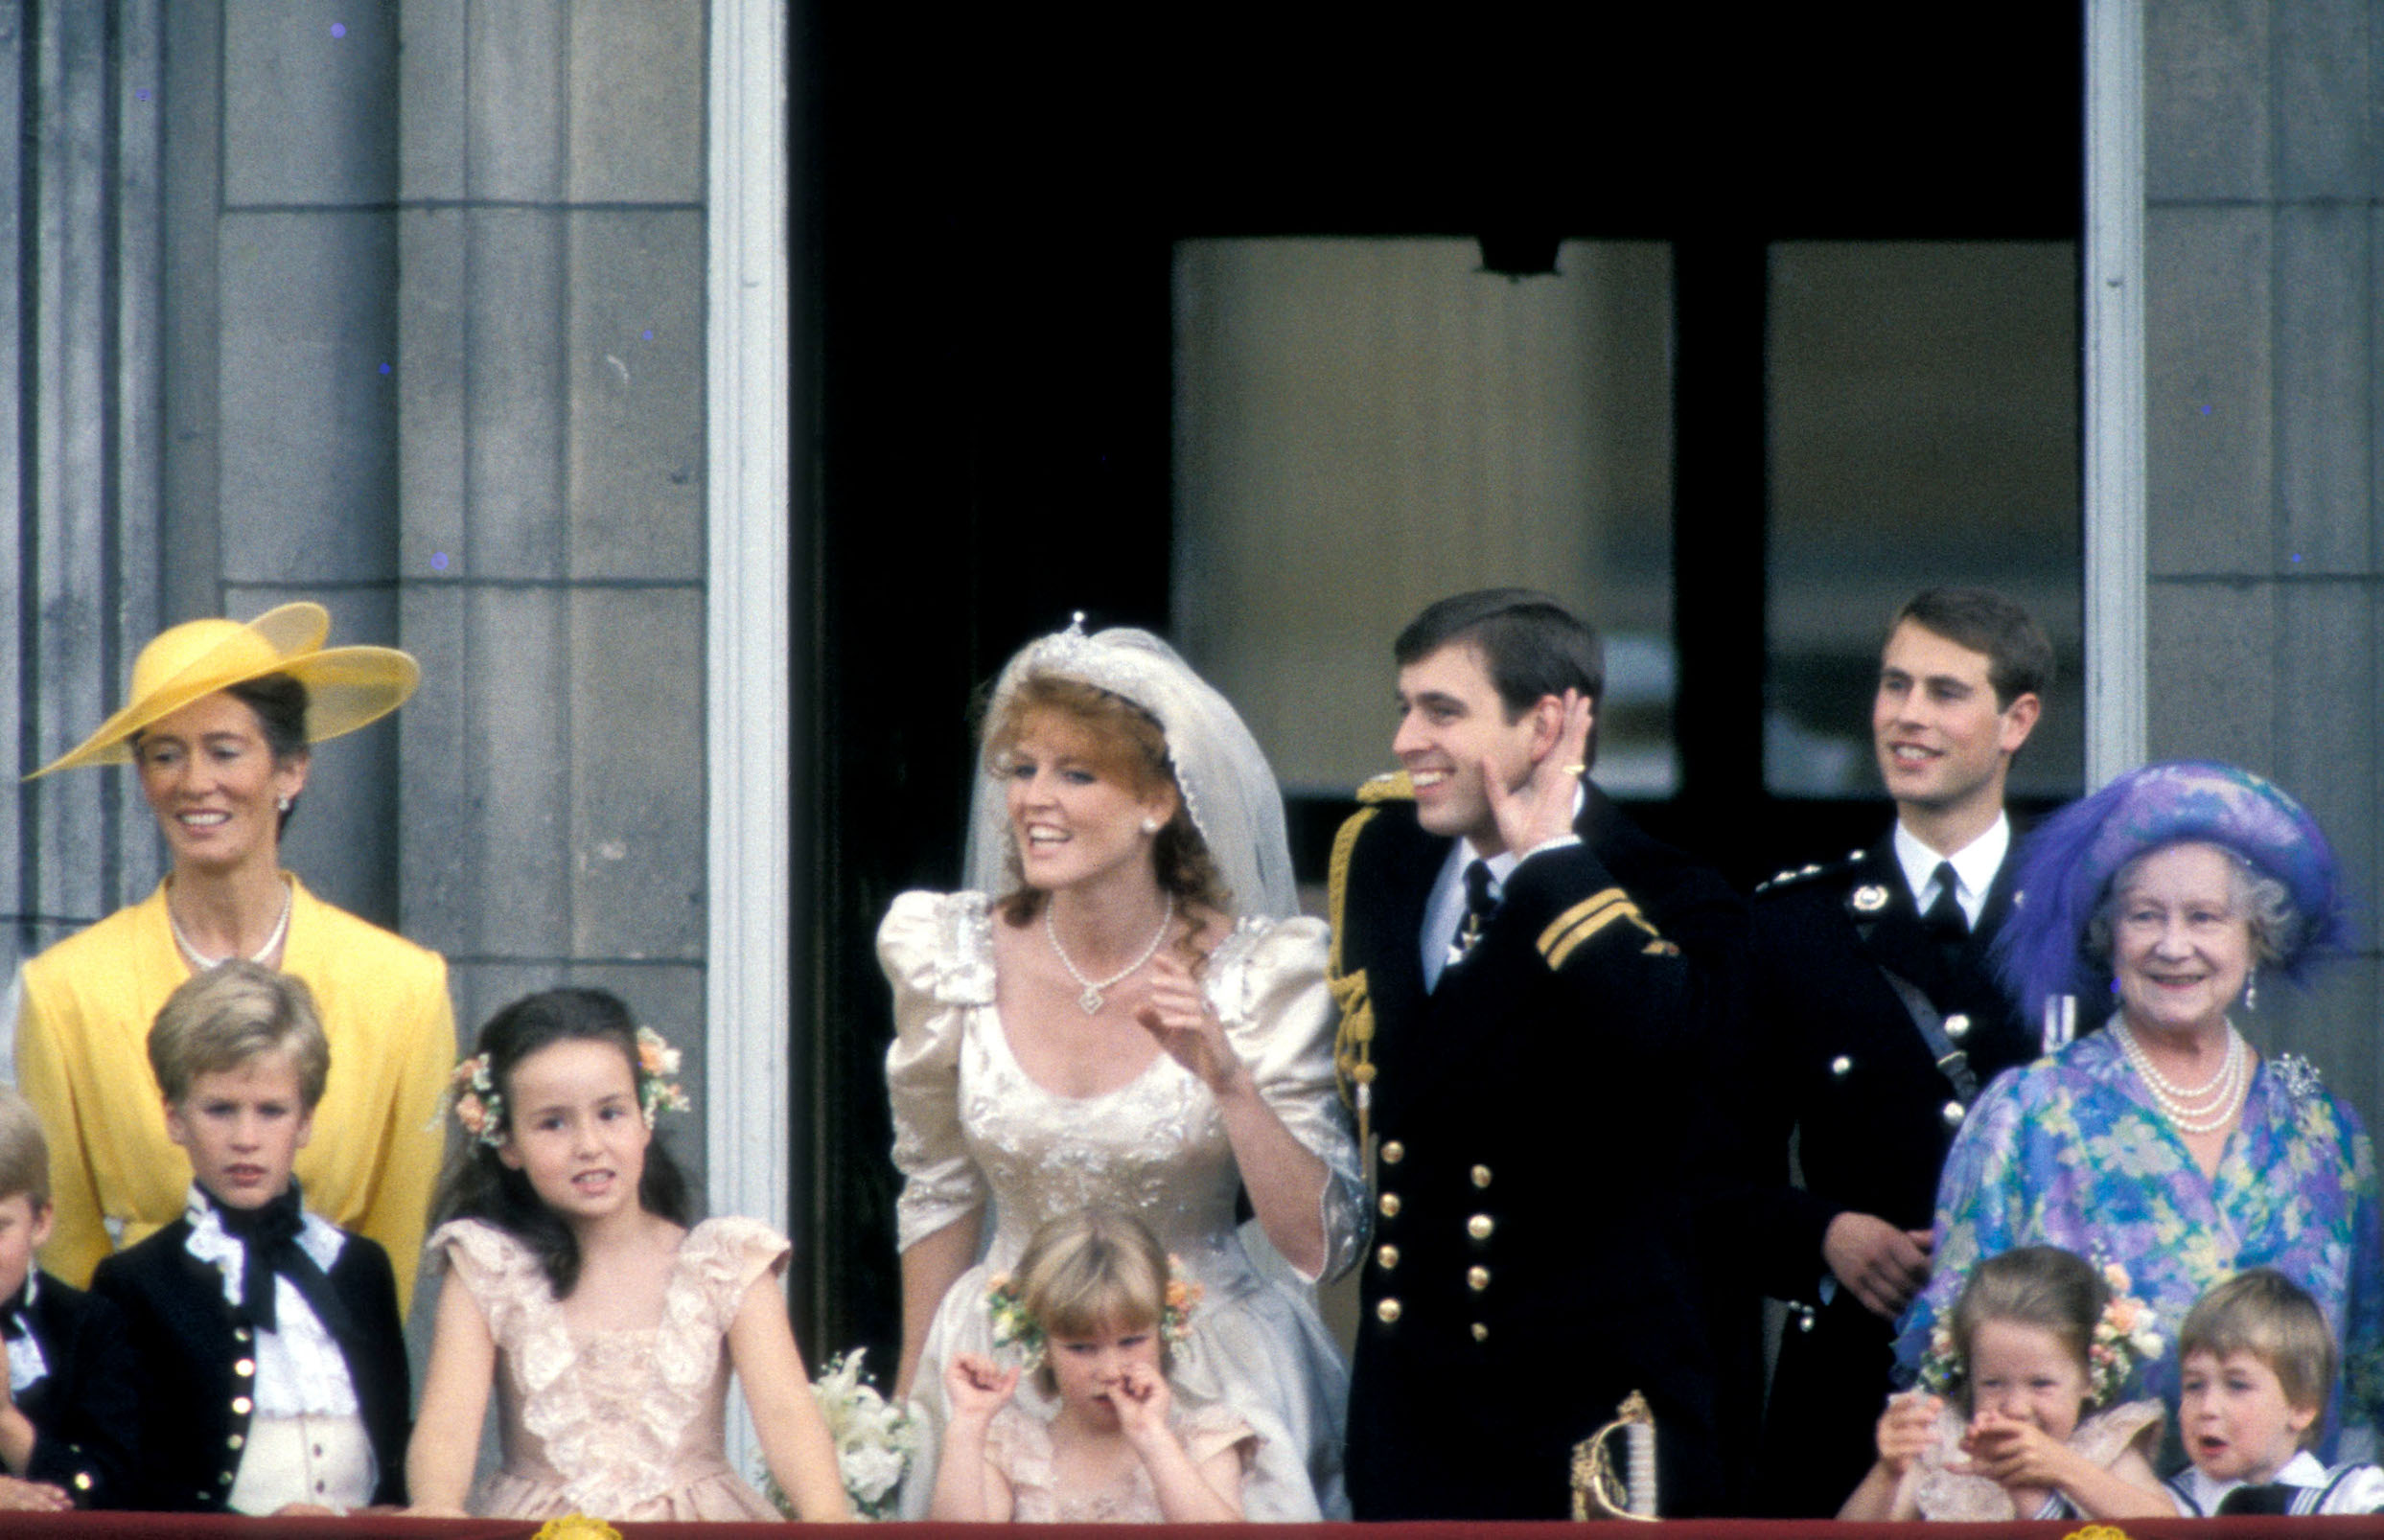 6 January 2015.  Prince Andrew's problems continue.  Here, stock image: 03/07/1986 Scenes from the Balcony at Buckingham Palace after the Wedding of Prince Andrew, Duke of York to Sarah Ferguson The Bride and Groom with Peter Phillips and his sister Zara Phillips, Prince Edward, Duke of Kent, The Queen Mother and William, Prince of Wales,Image: 214636135, License: Rights-managed, Restrictions: **No UK Sales**, Model Release: no, Credit line: ADavidson / Goff Photos / Profimedia